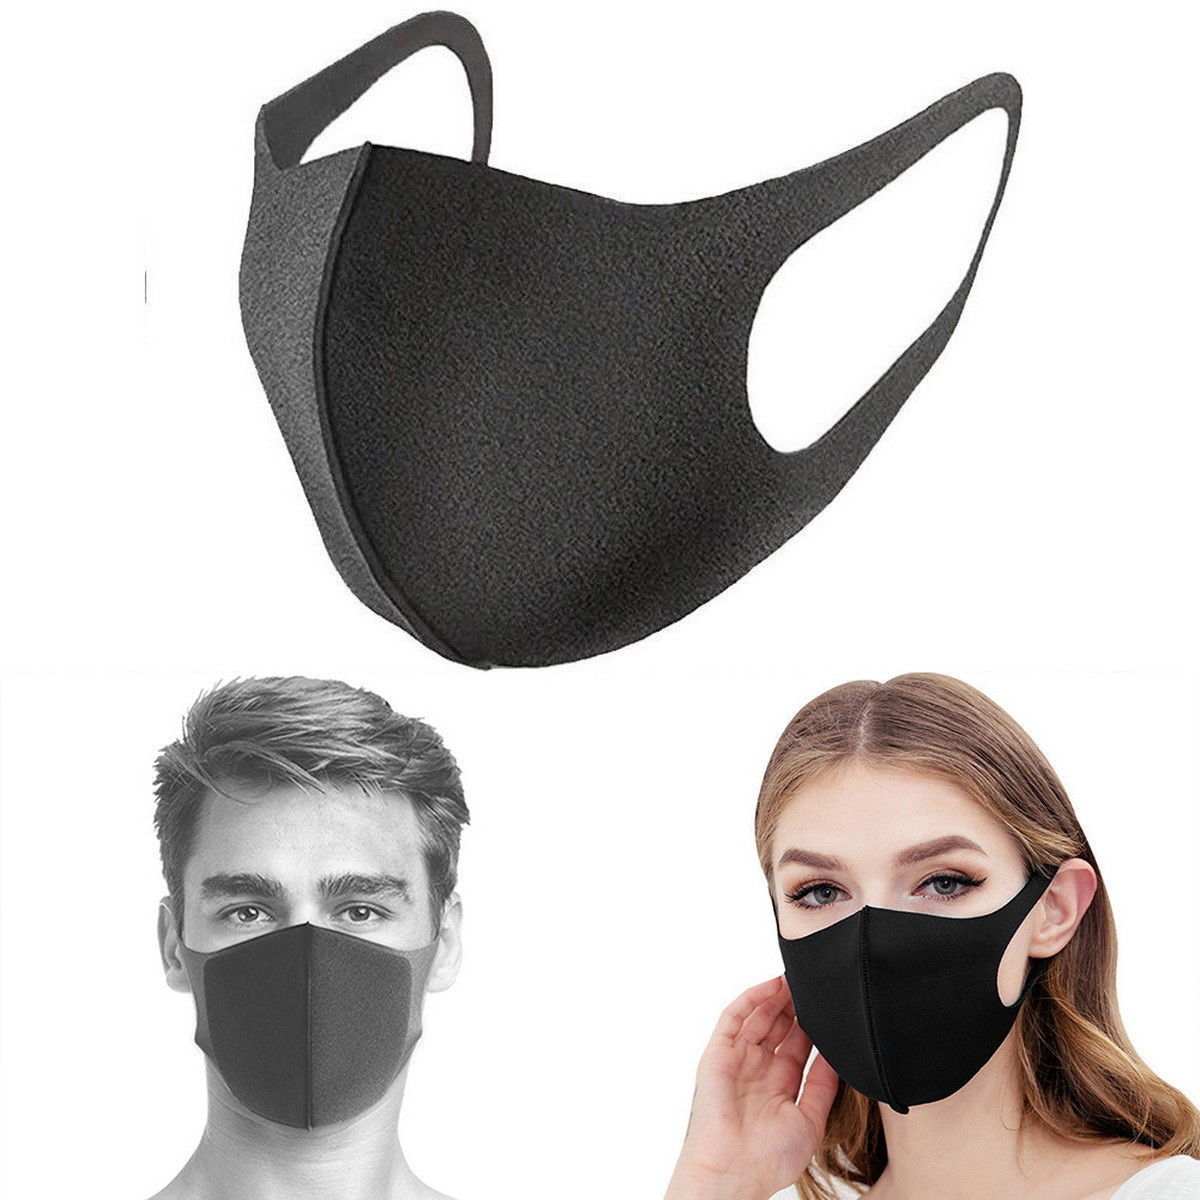 Washable Face Mask Nose Protection Reusable Cycling Anti Dust Environmental Mouth Mask Surgical Respirator Fashion Black Mask